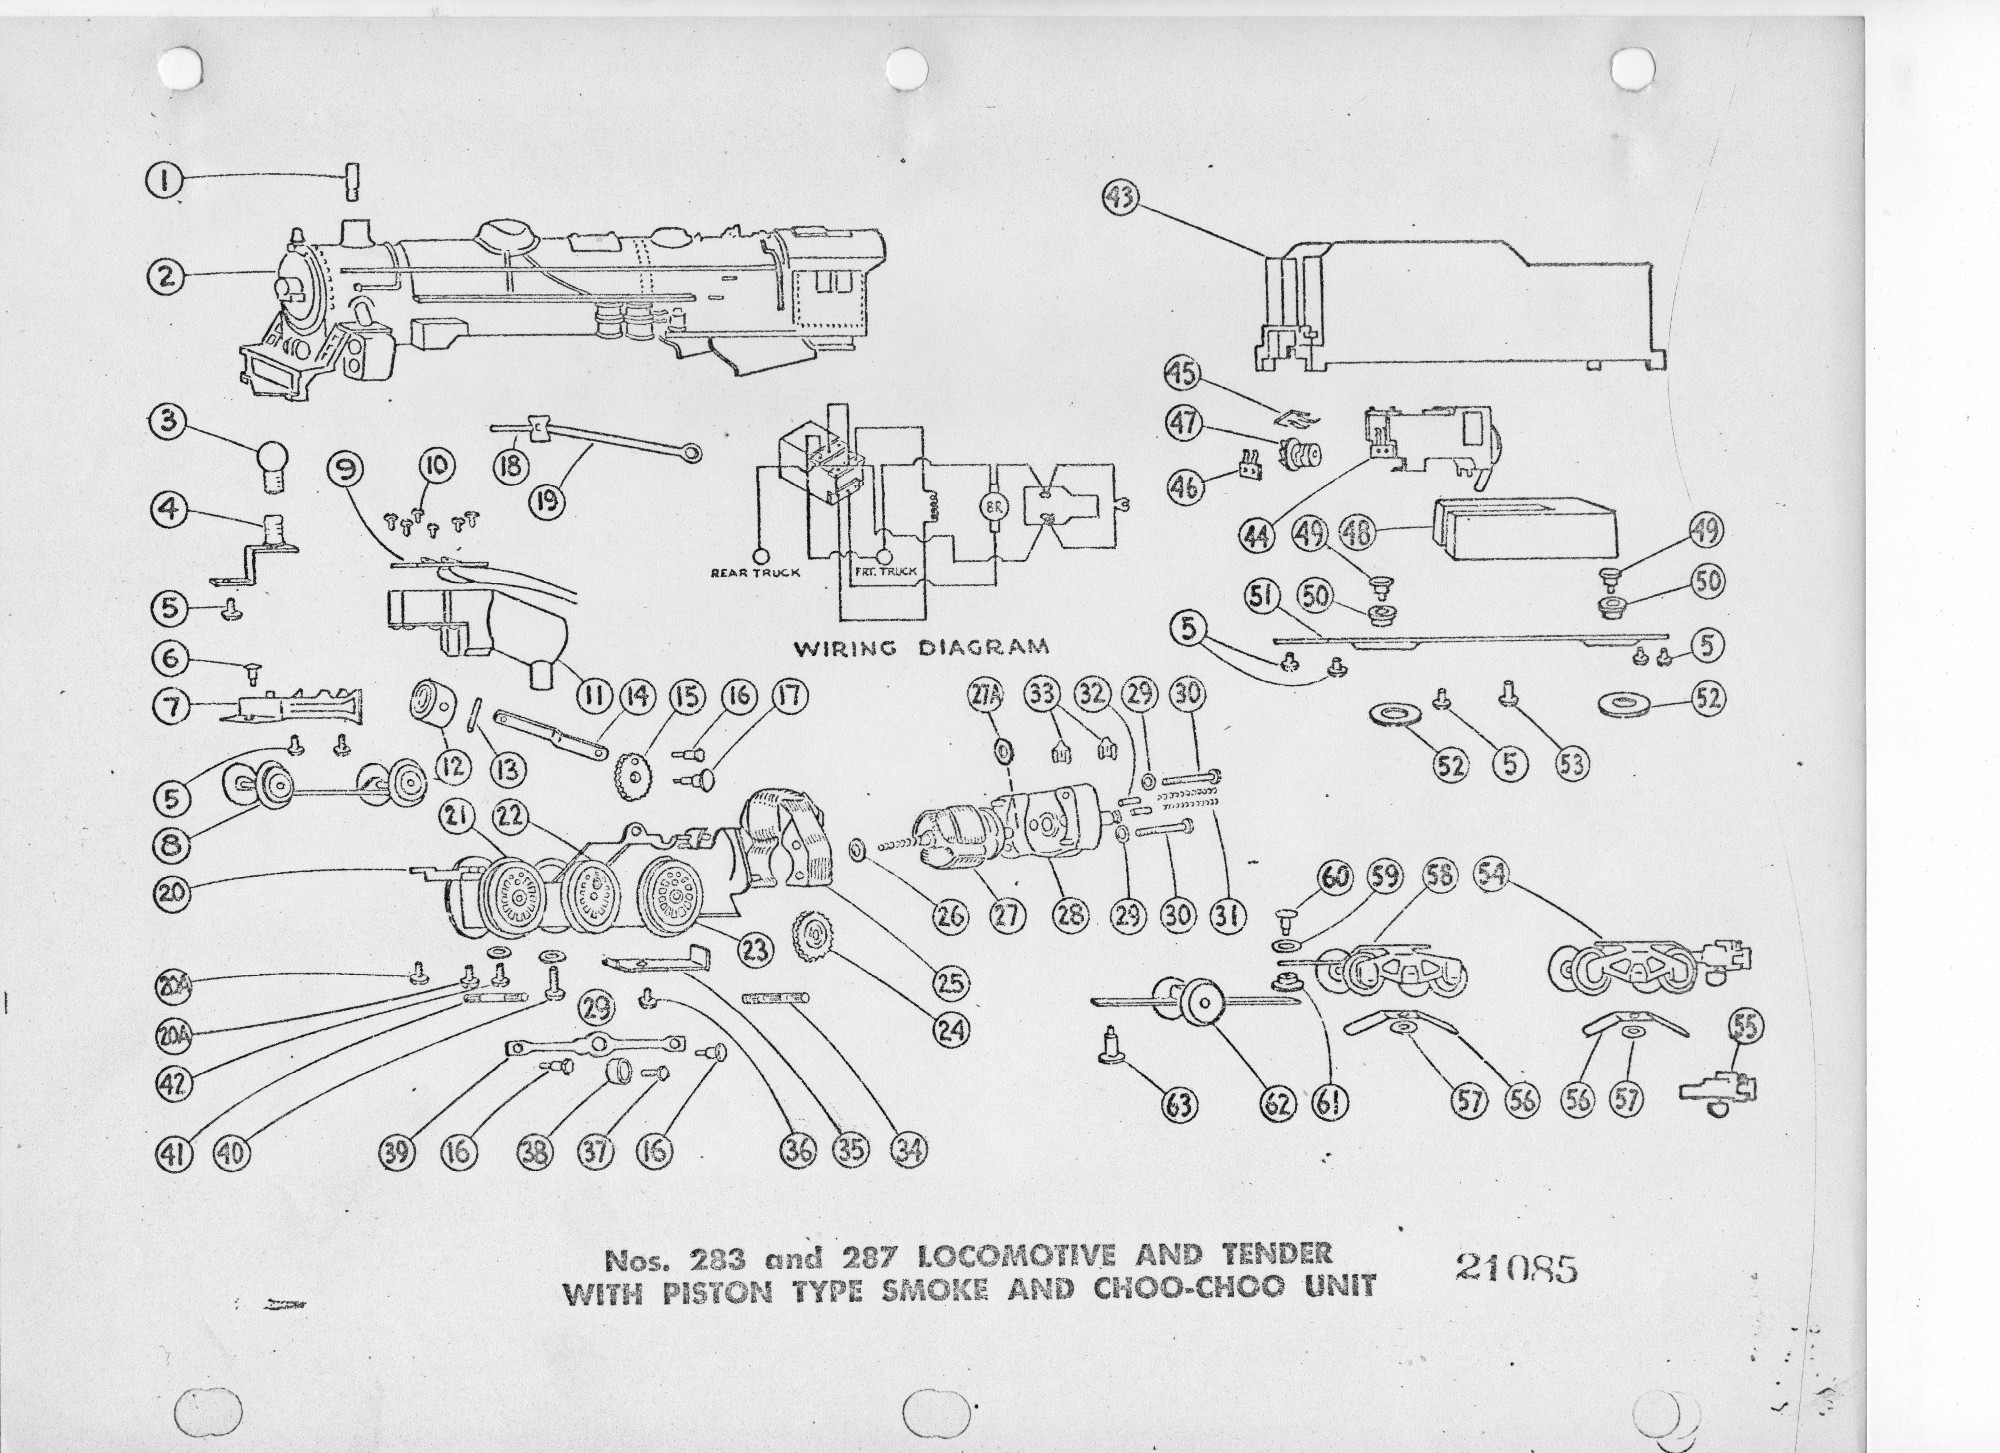 Lionel Postwar Wiring Diagrams Model Train Wiring Diagrams